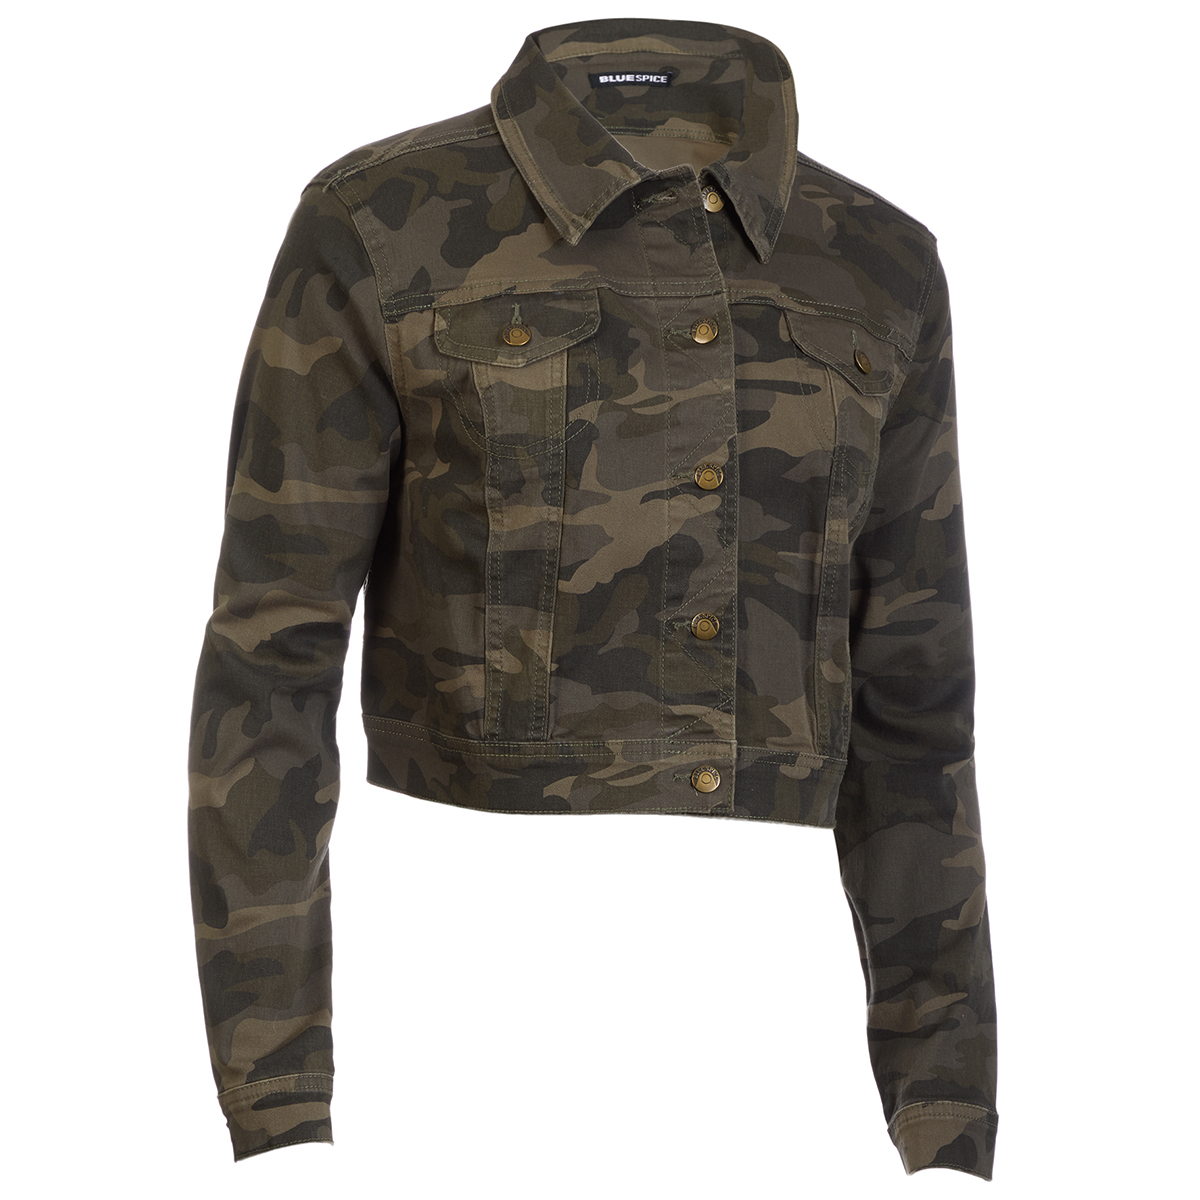 Blue Spice Juniors' Twill Camo Jacket